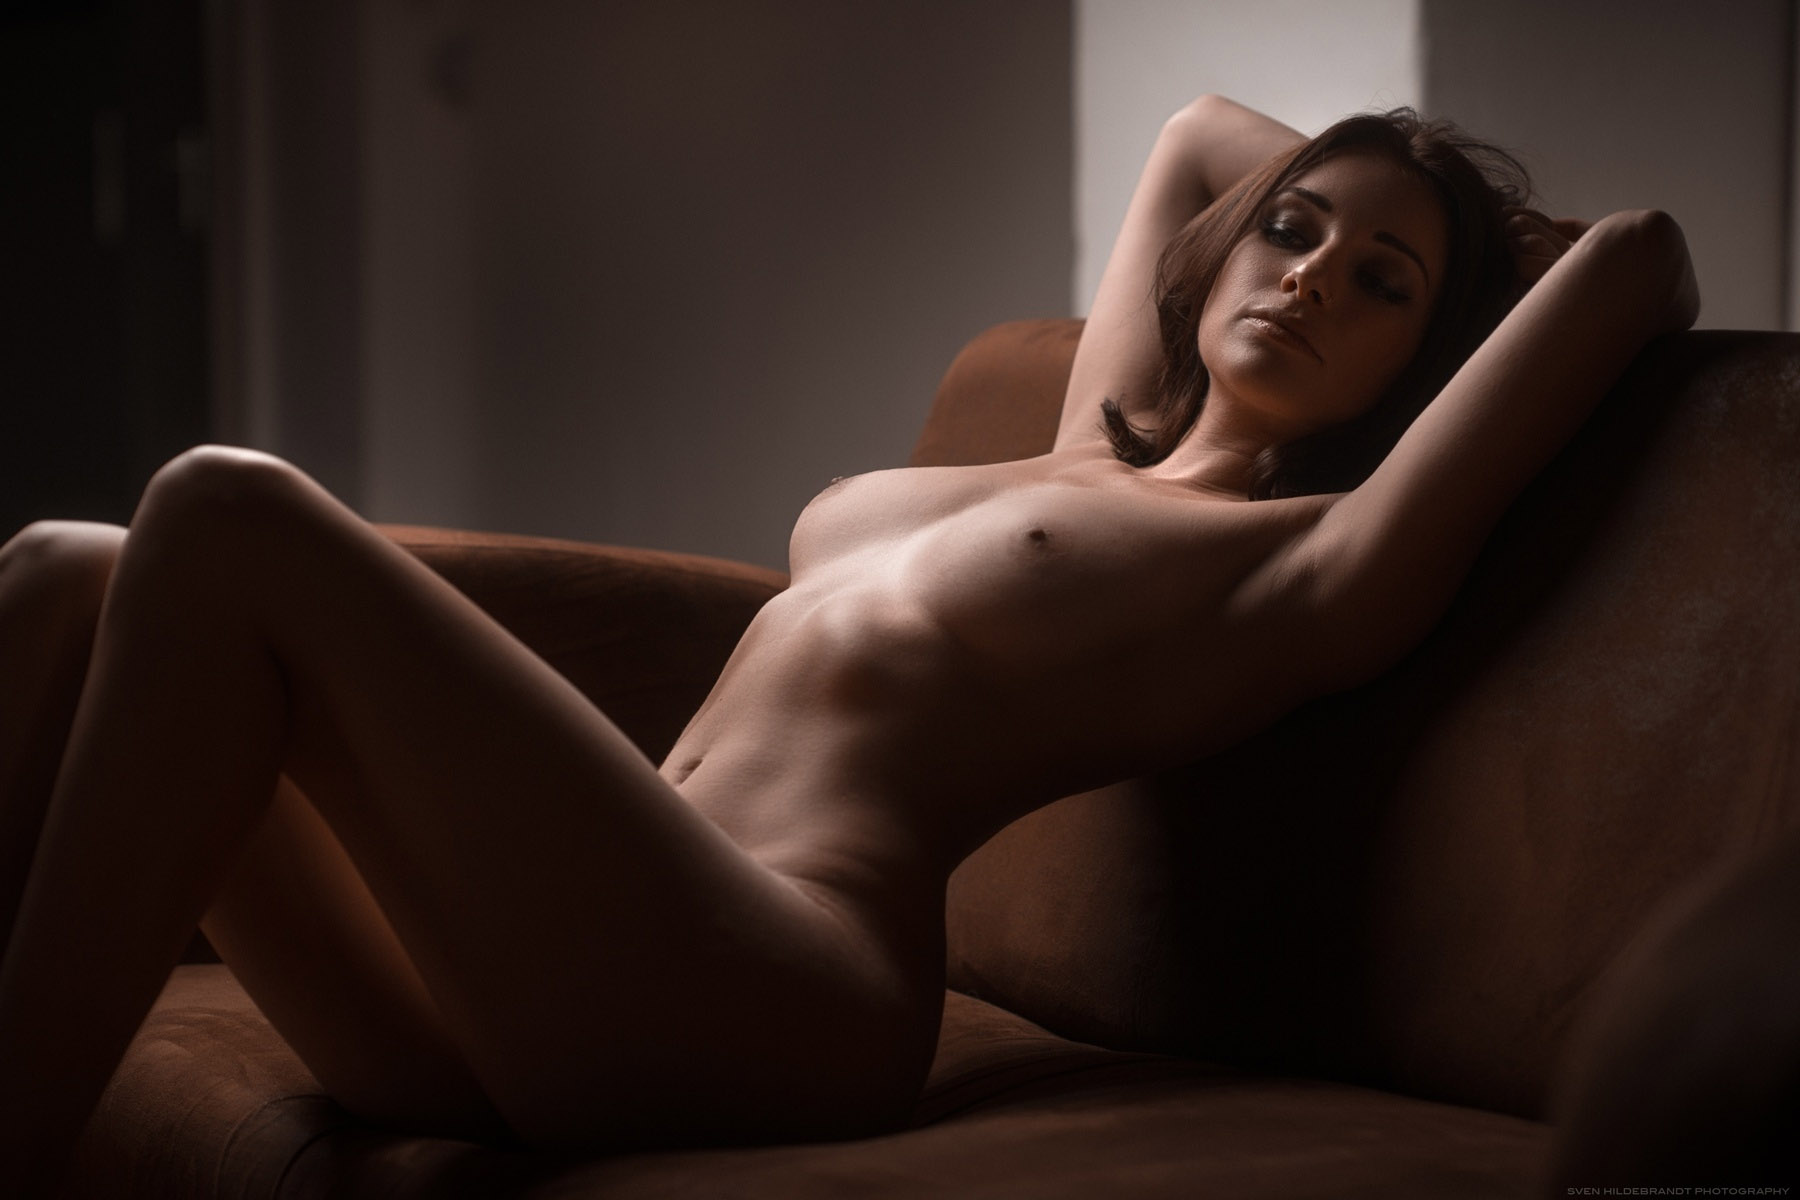 Pictures Of Erotic Girls Daily